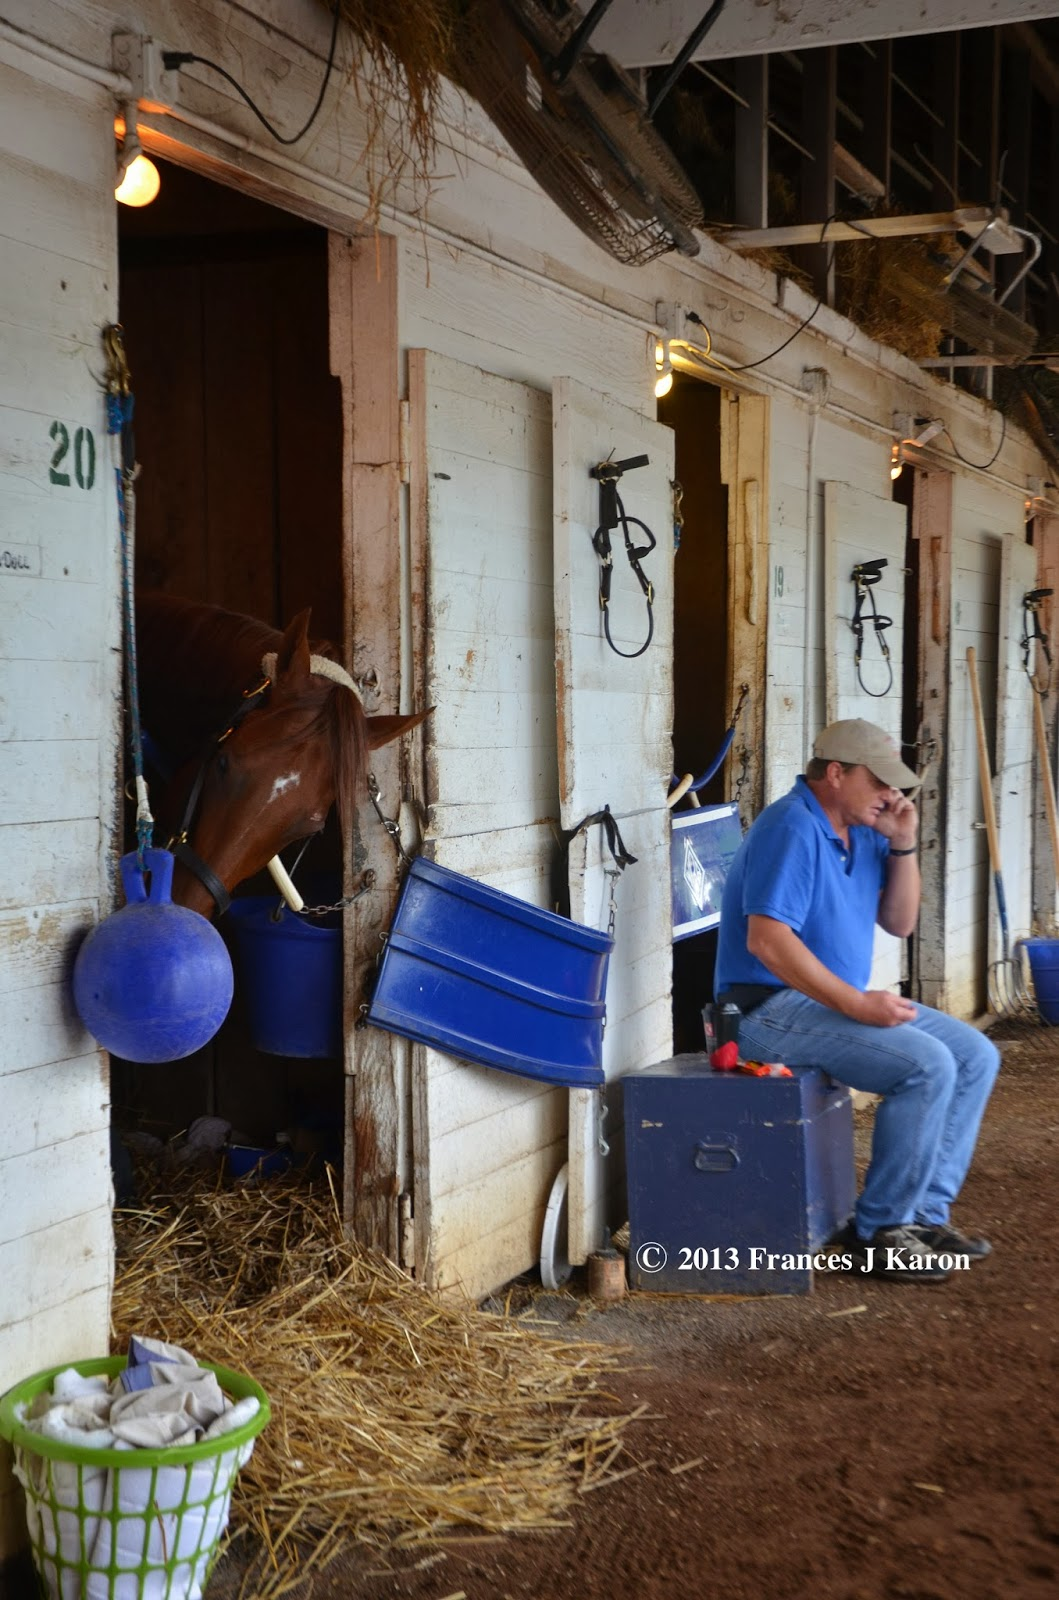 Running Rough Shod New Issue Of Nat Features Groupie Doll